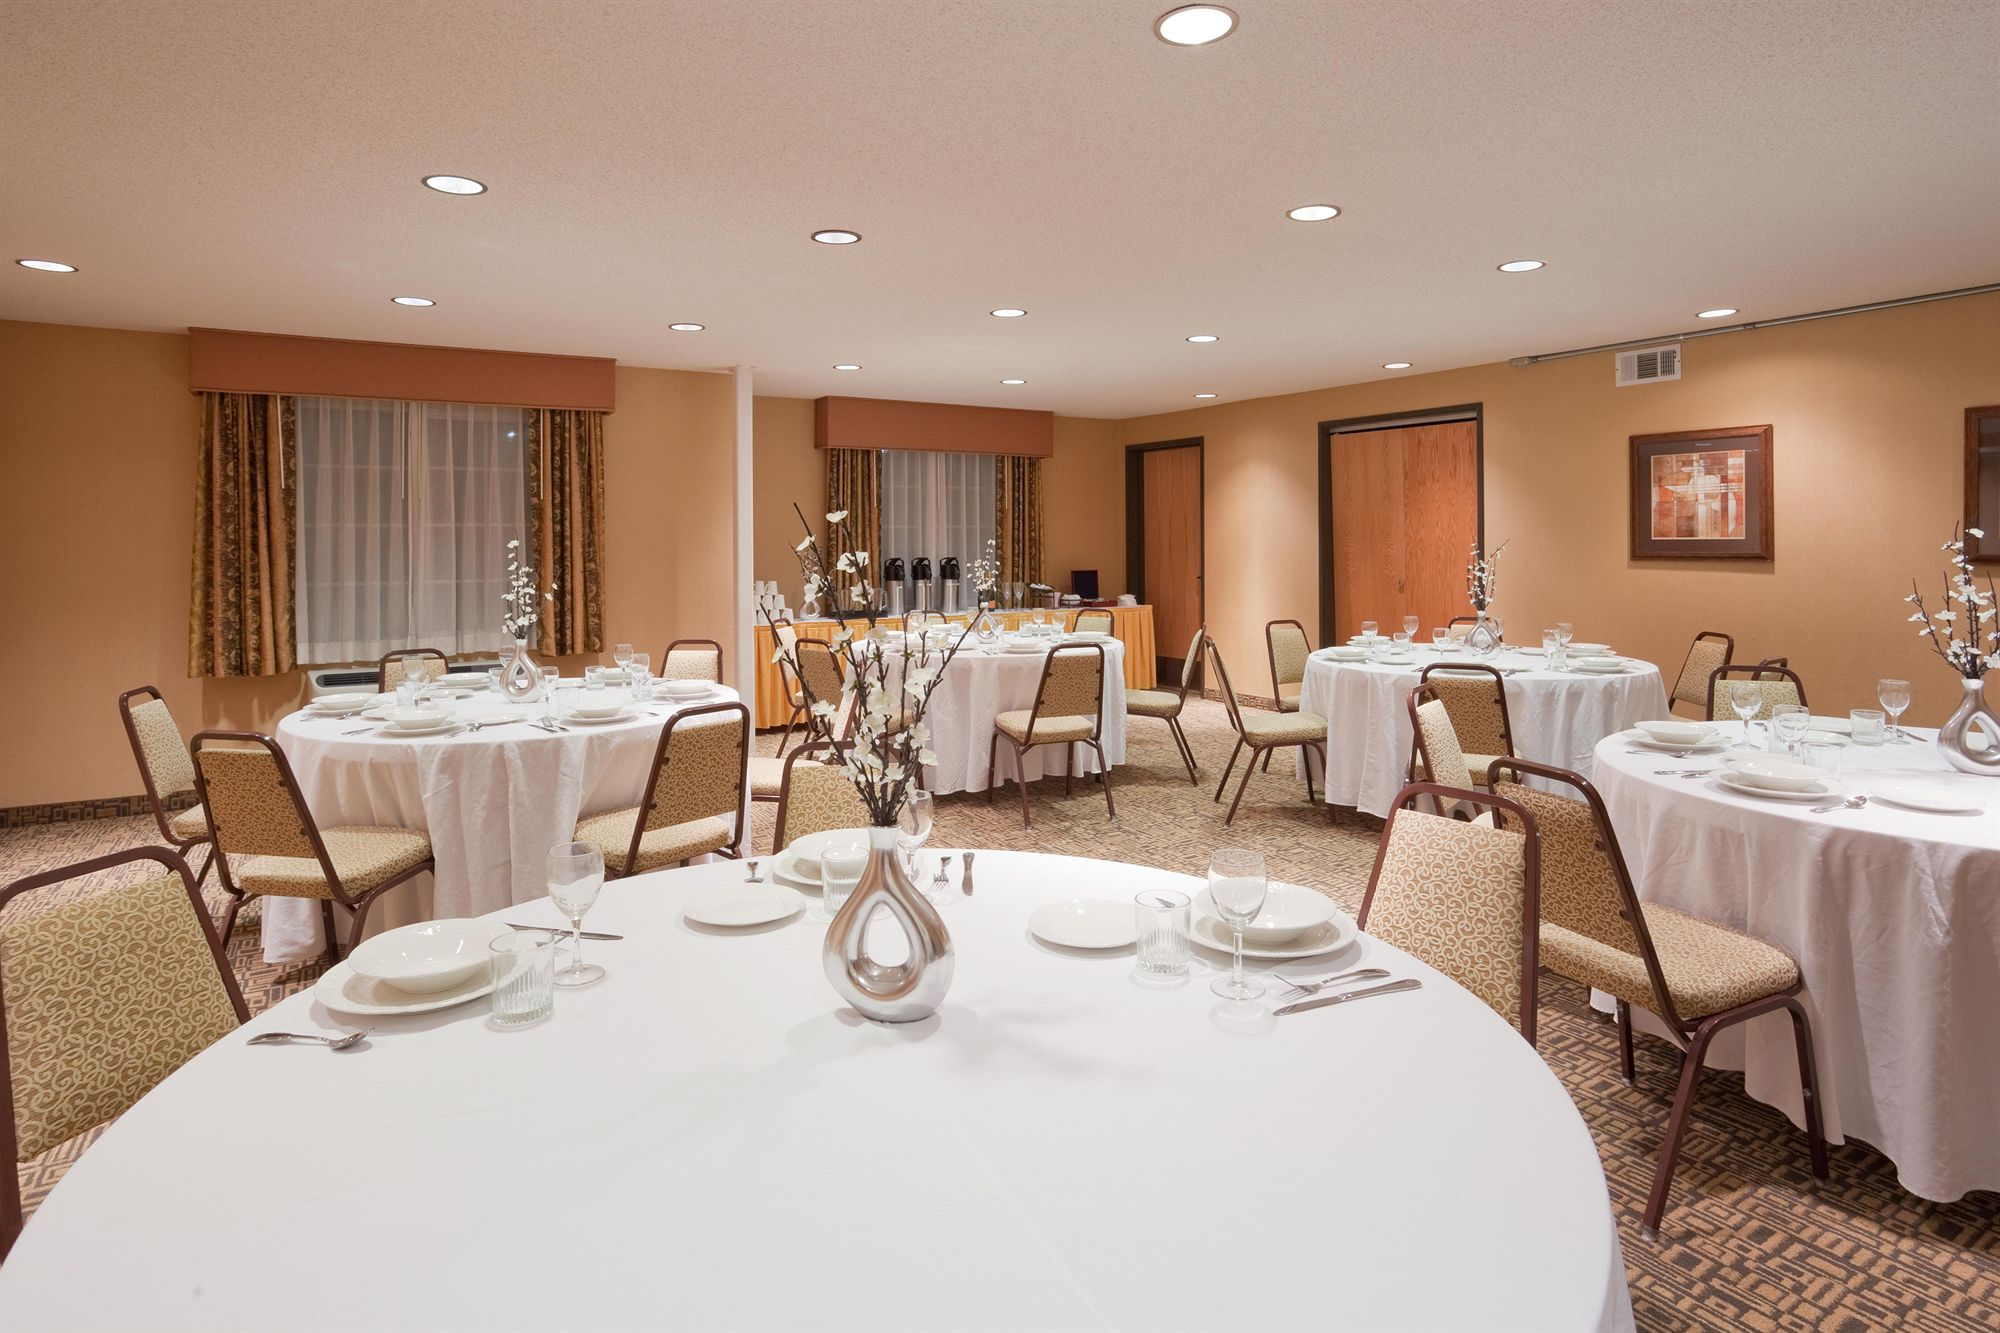 Livermore Hotel Coupons for Livermore, California - FreeHotelCoupons.com